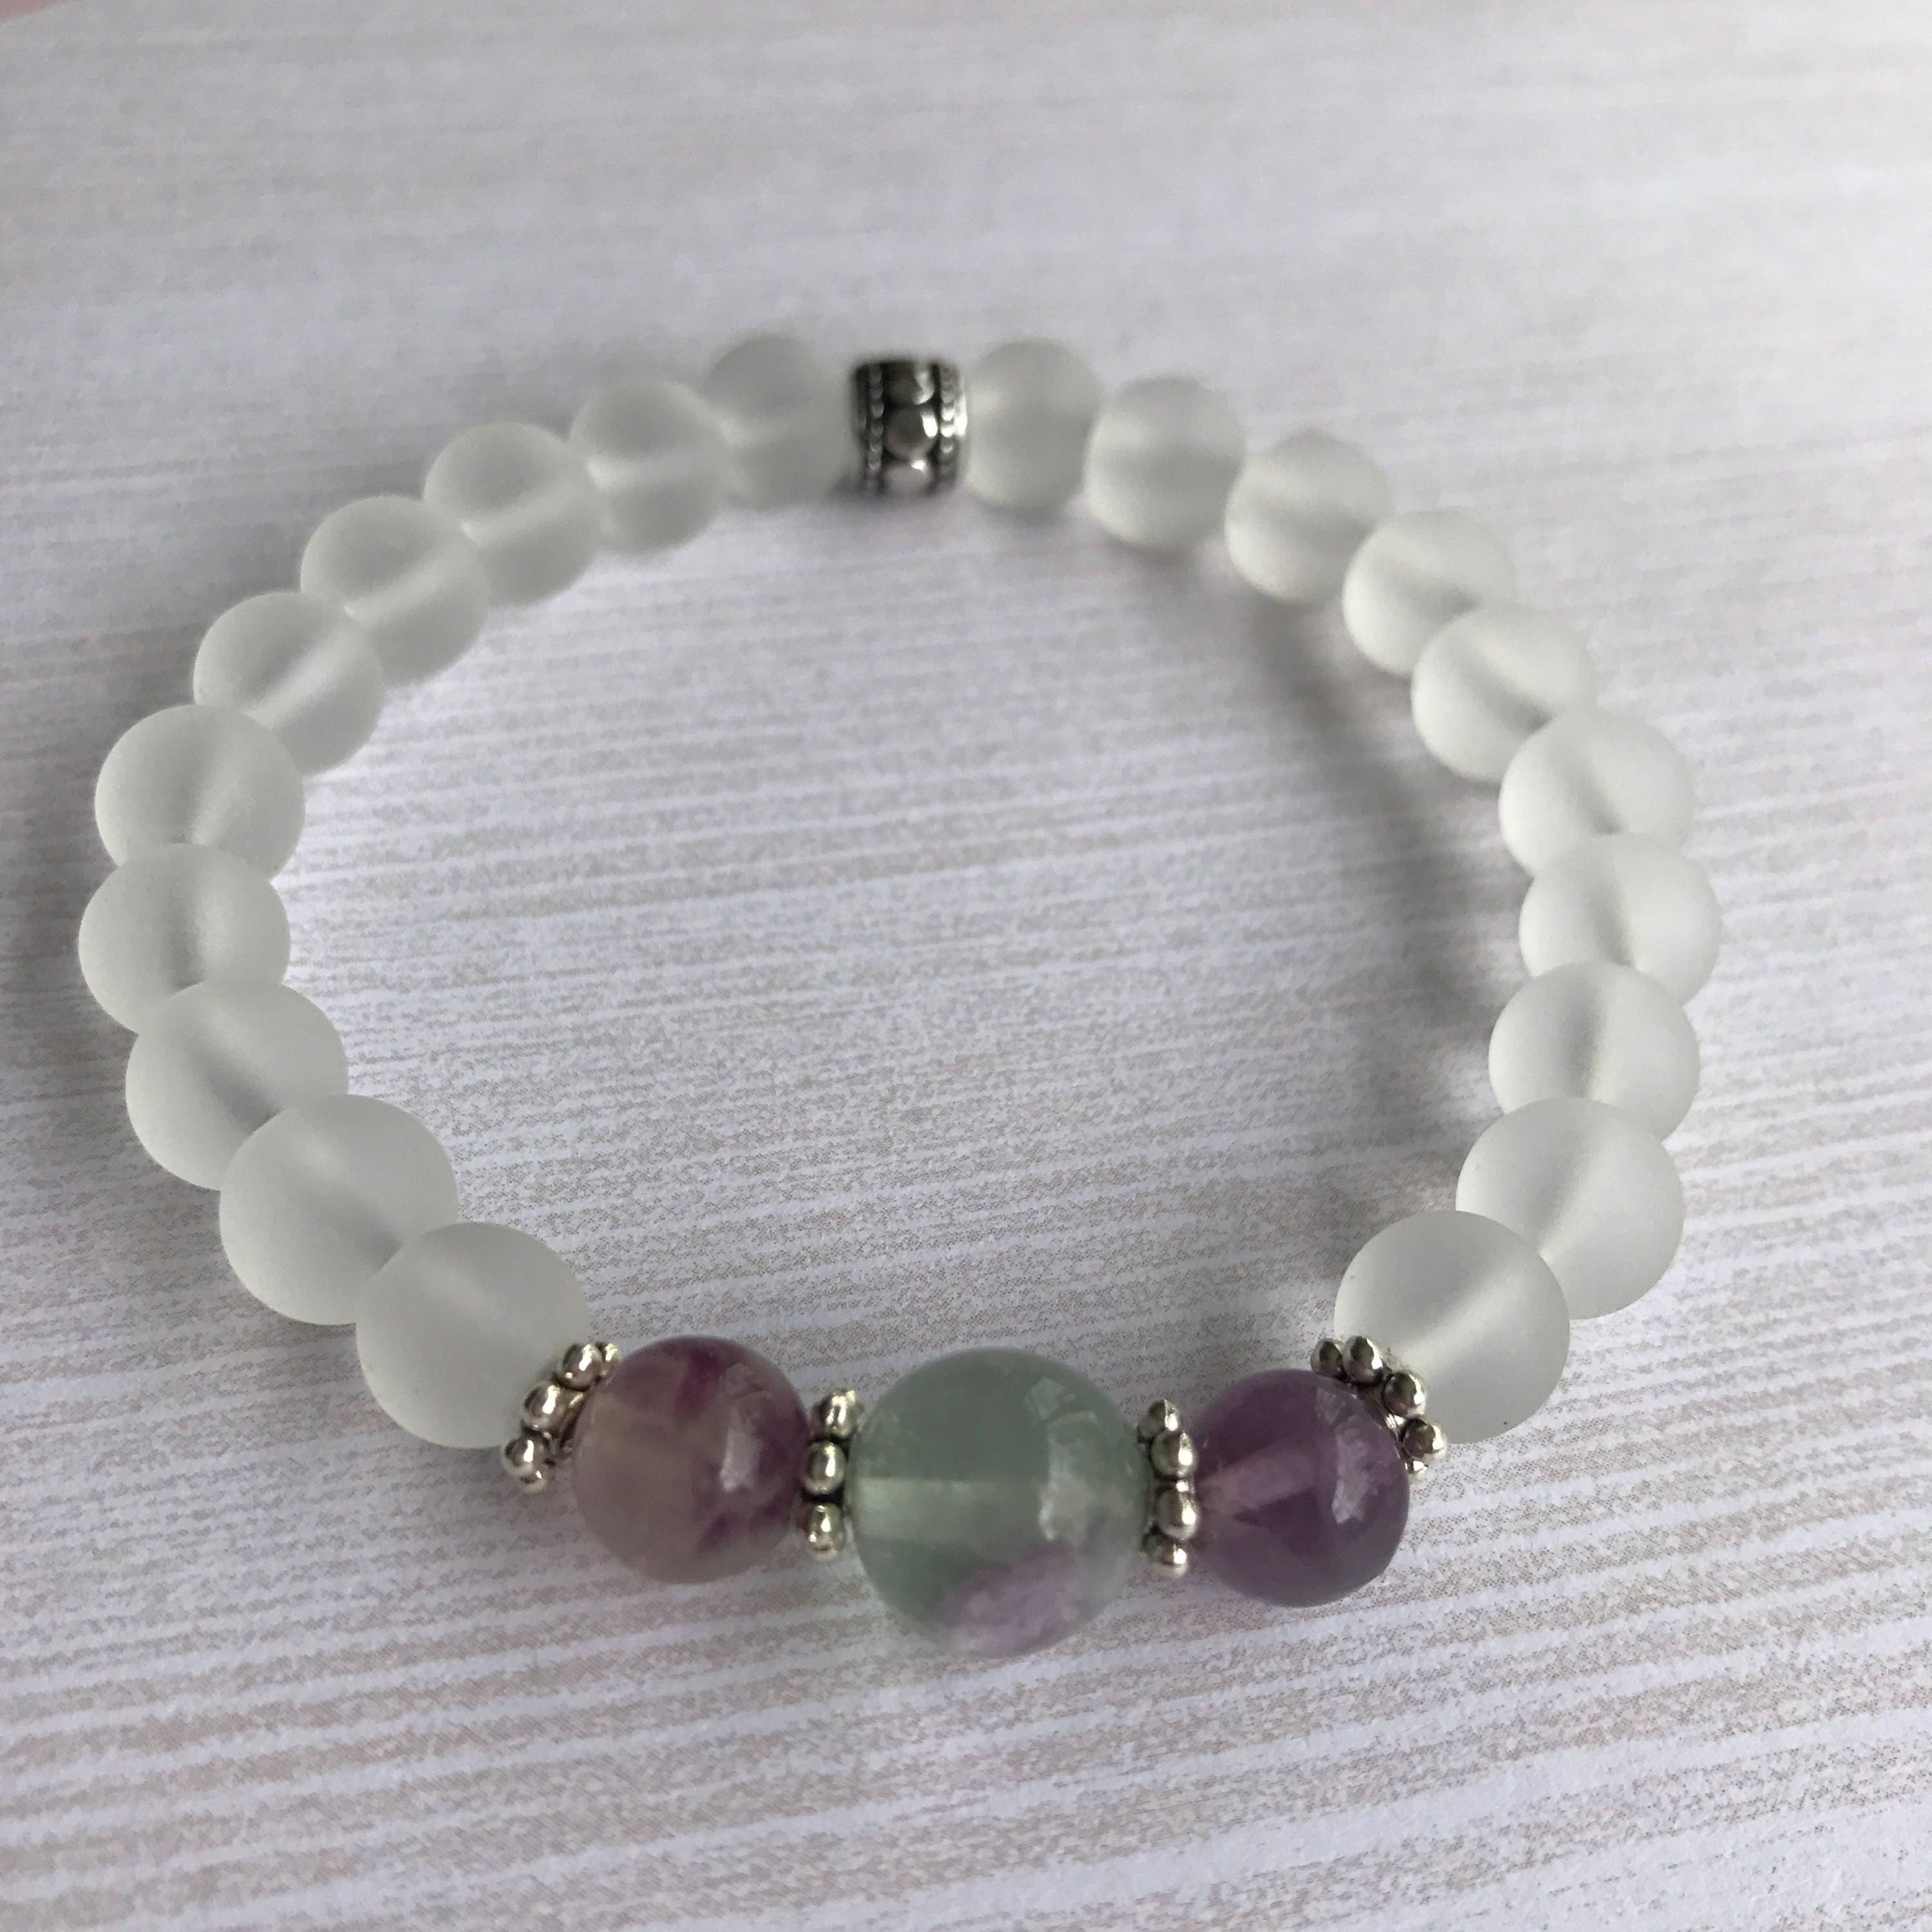 Genuine Rainbow Fluorite Crystal Bracelet Healing Protection Calming Clarity Grounding Stress Relief Meditation Gift Her & Genuine Rainbow Fluorite Crystal Bracelet Healing Protection Calming ...